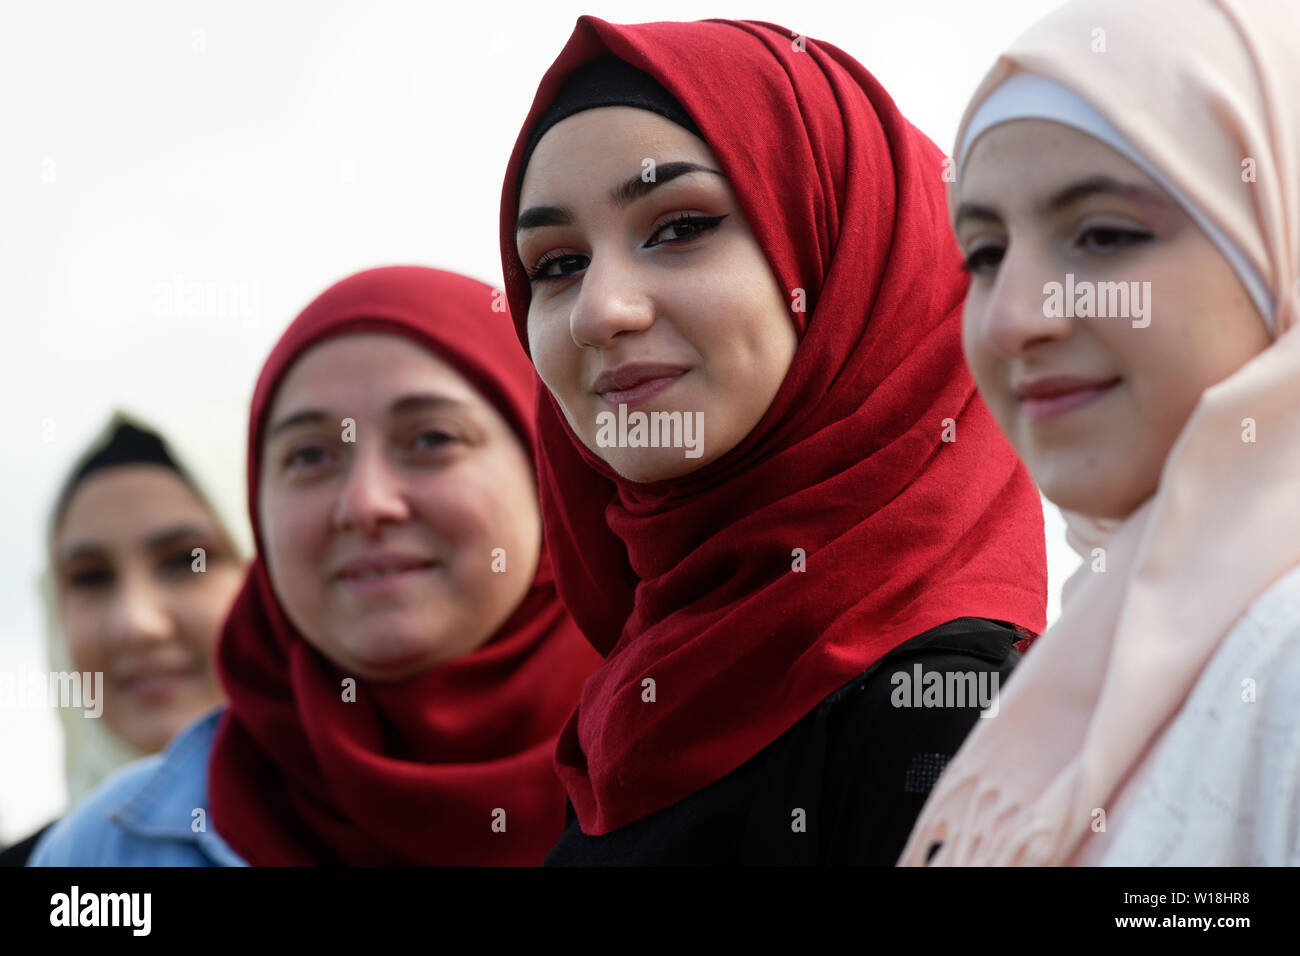 Suliman Stock Photos & Suliman Stock Images - Alamy